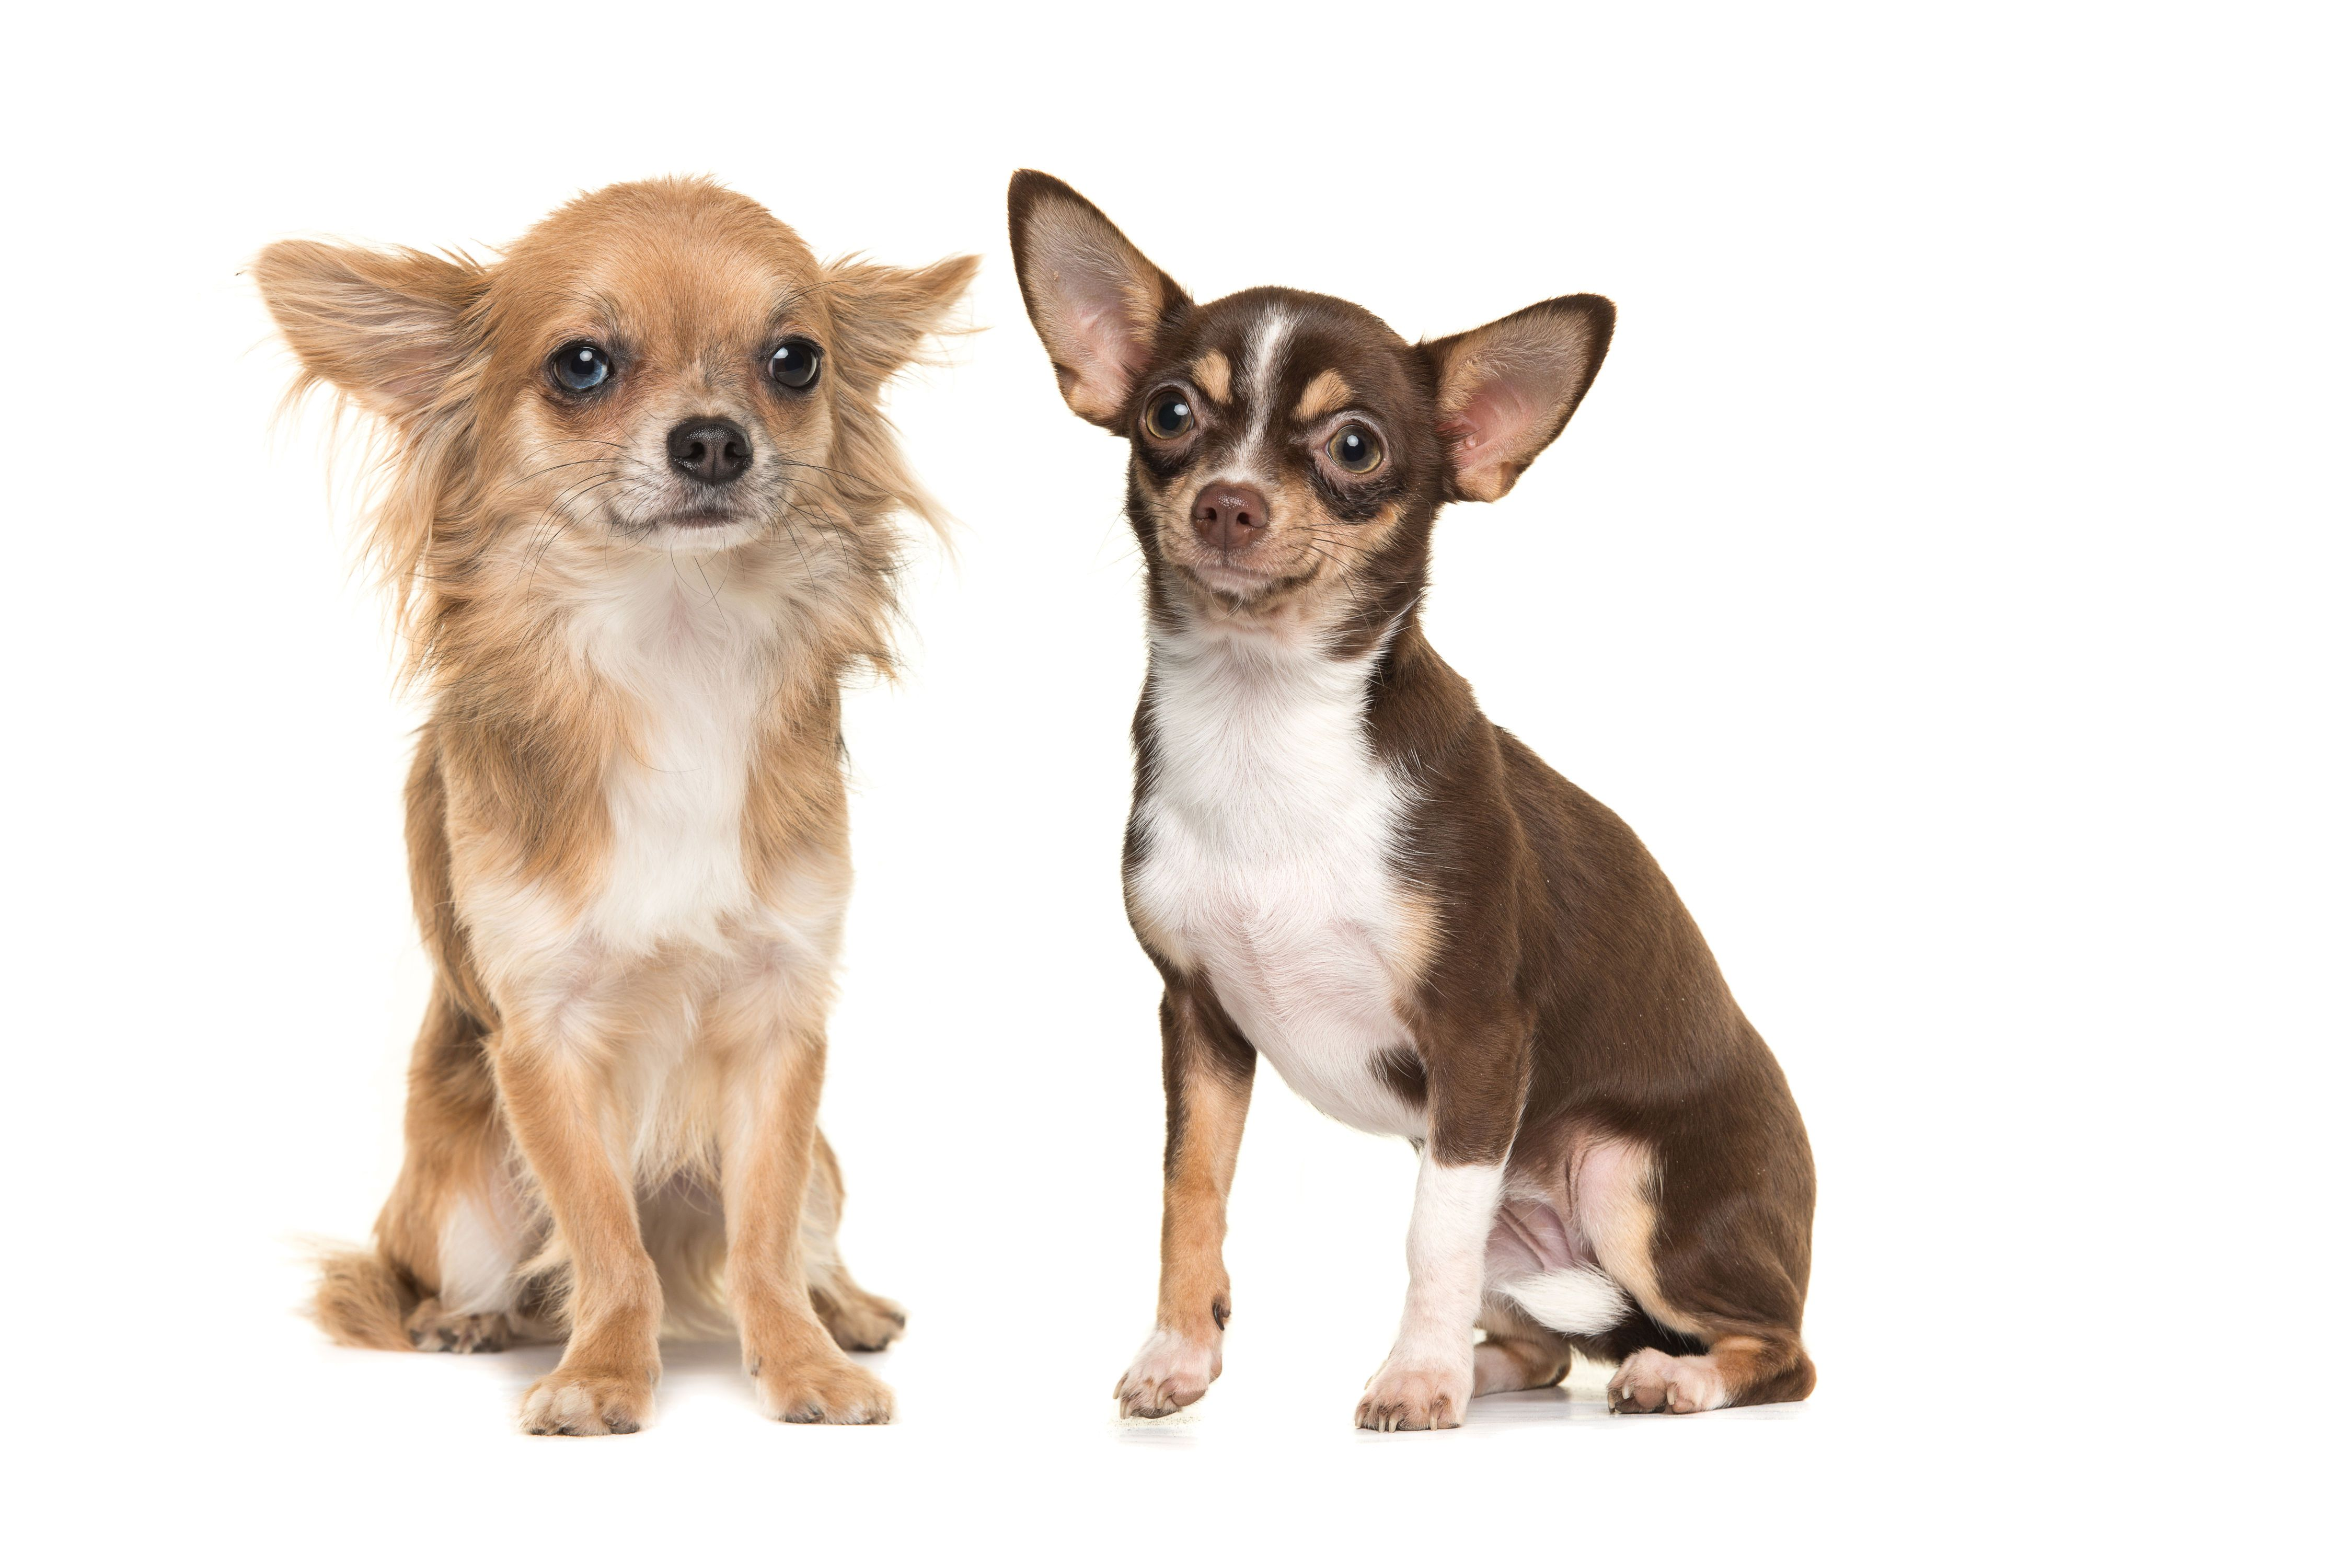 30 Small Dog Breeds That Make Great Pets Dog Breeds Small Dogs Small Dog Breeds